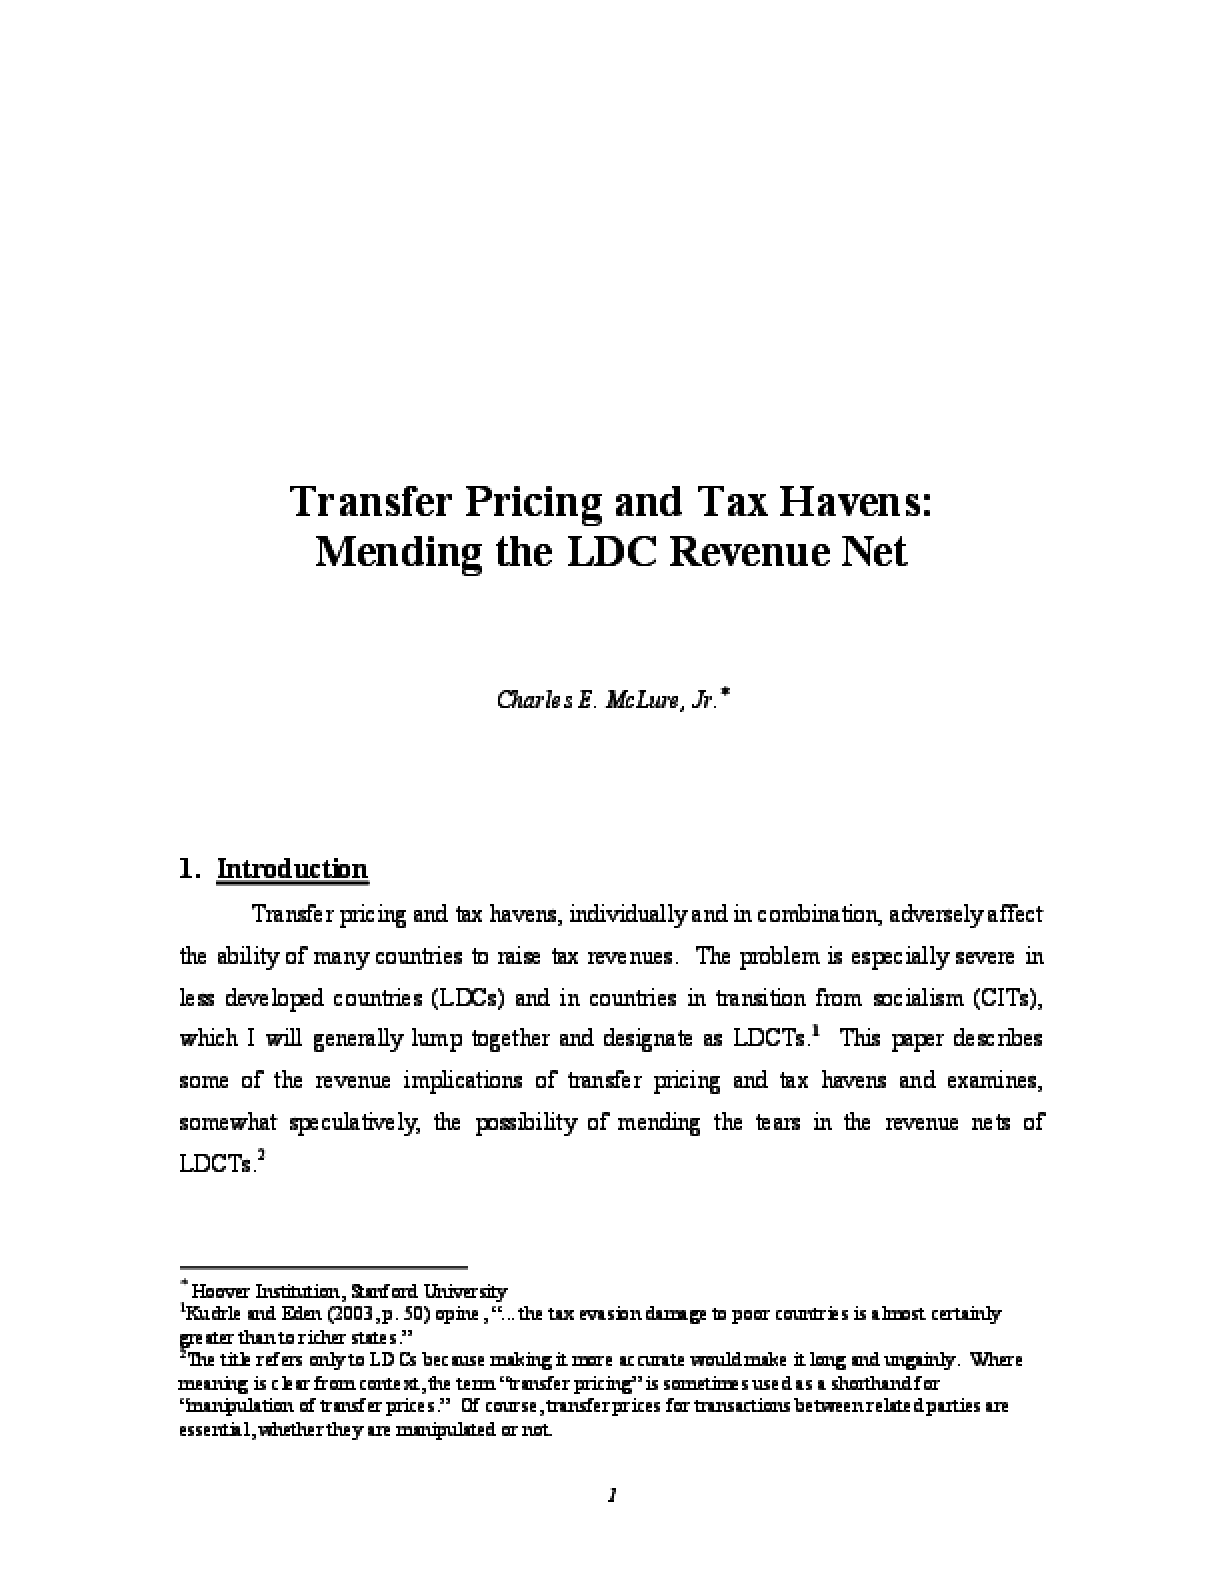 Transfer Pricing and Tax Havens: Mending the LDC Revenue Net